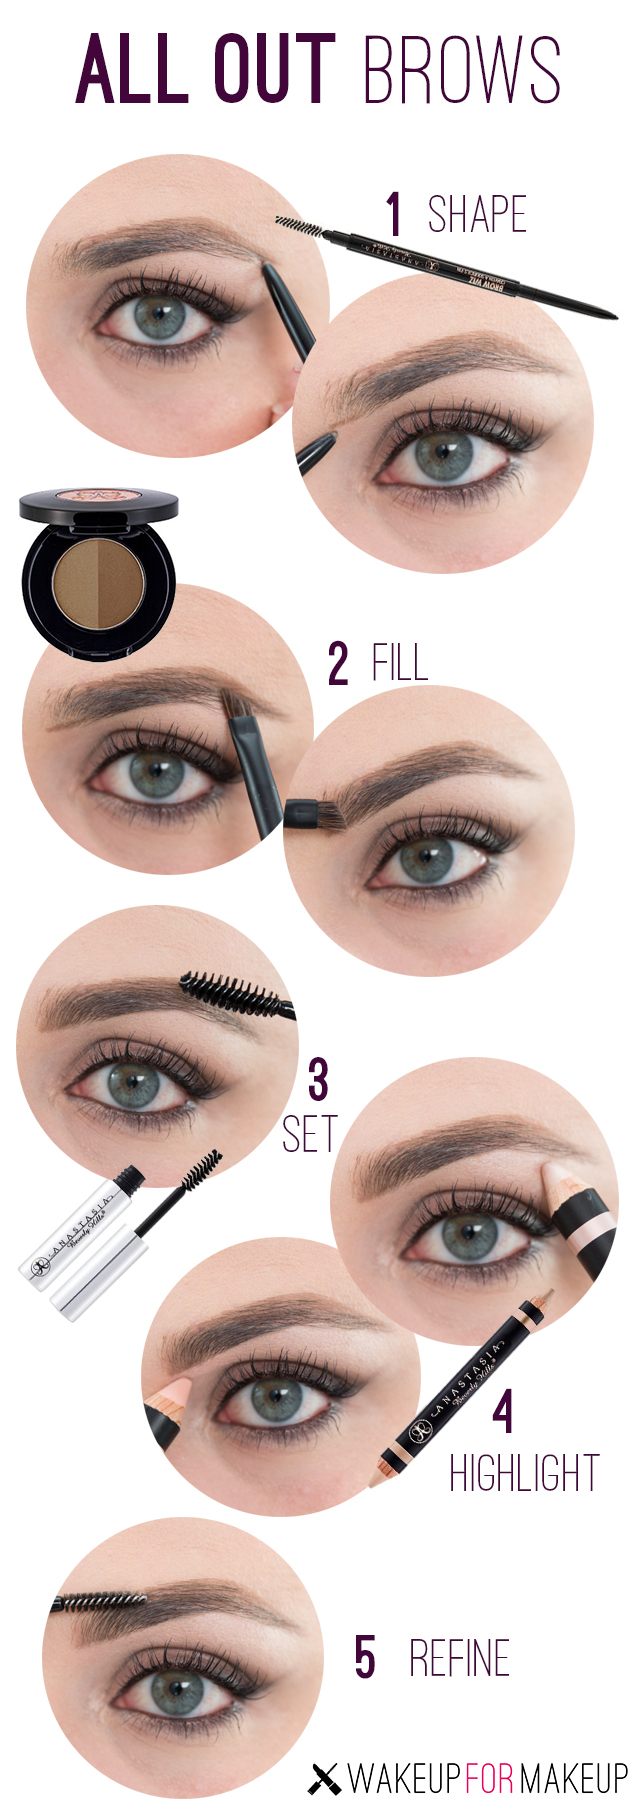 abh-alloutbrows